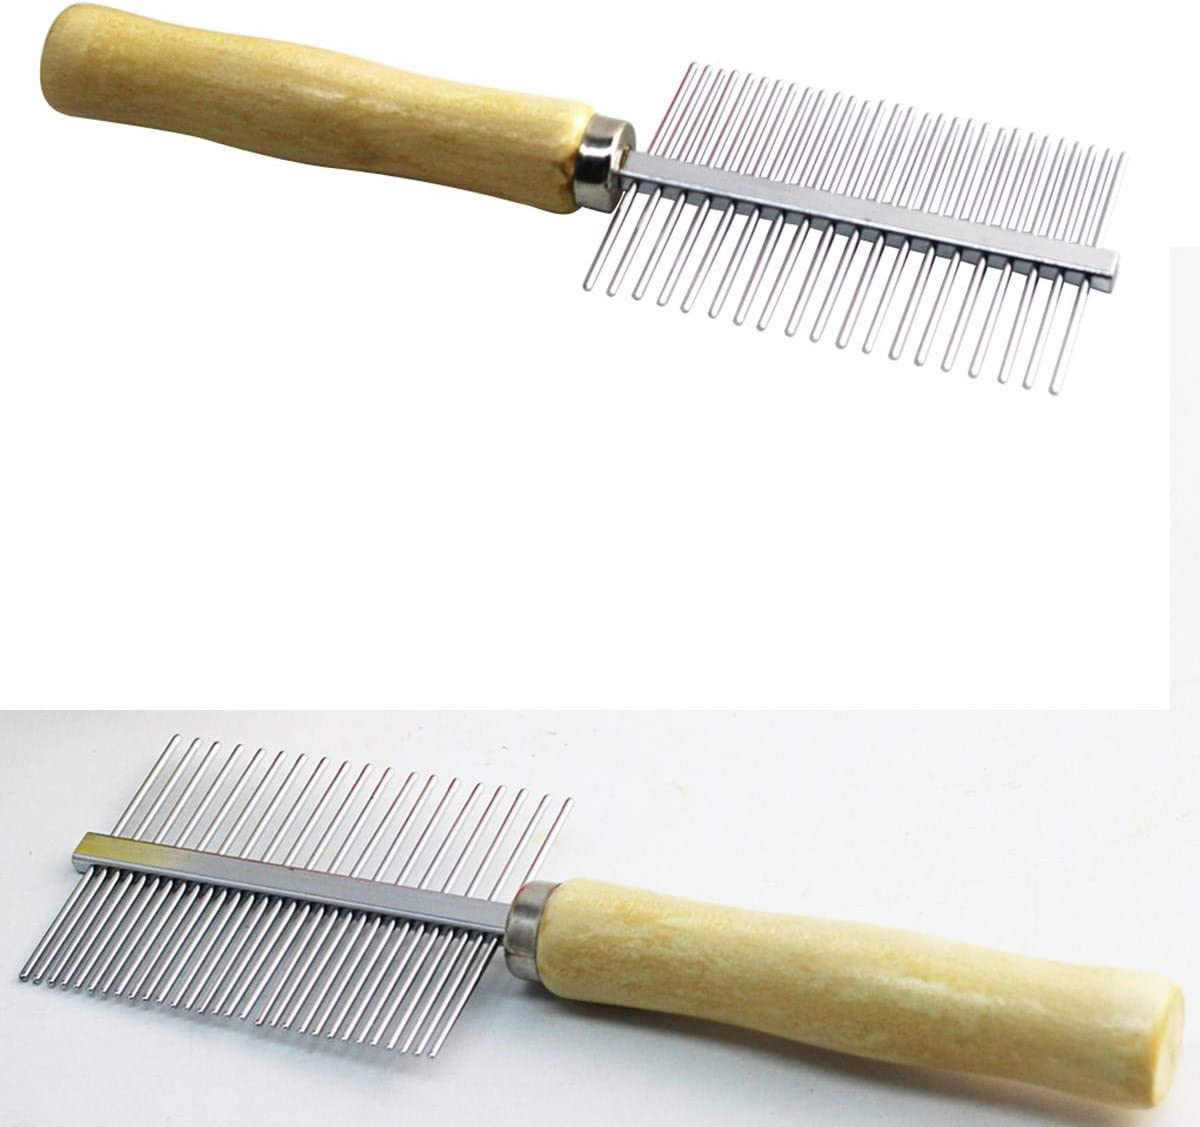 Pet Dog /& Cat Stainless Steel Grooming Comb Shedding Comb Trimmer Comb POPETPOP Pet Comb